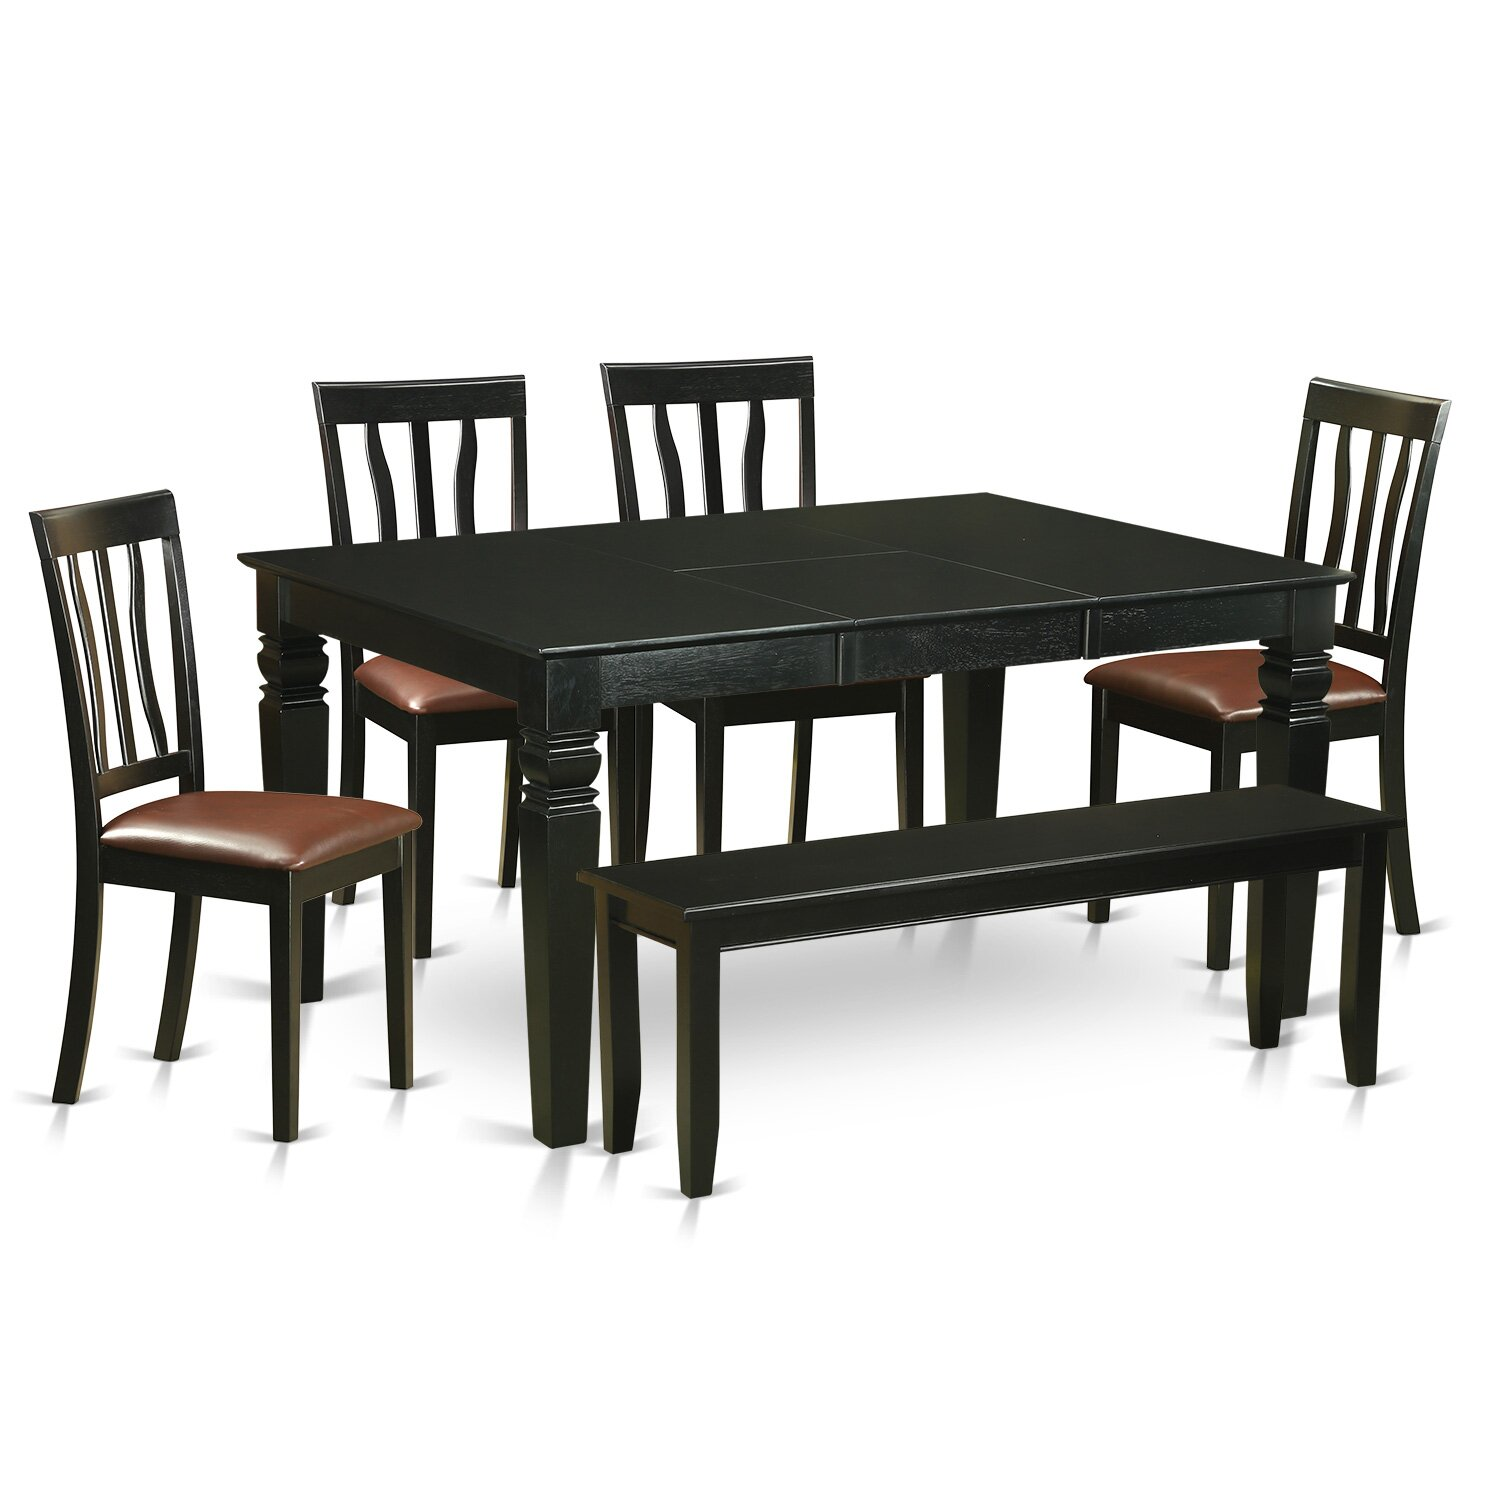 Wooden importers weston 6 piece dining set wayfair for Dining room table and bench set